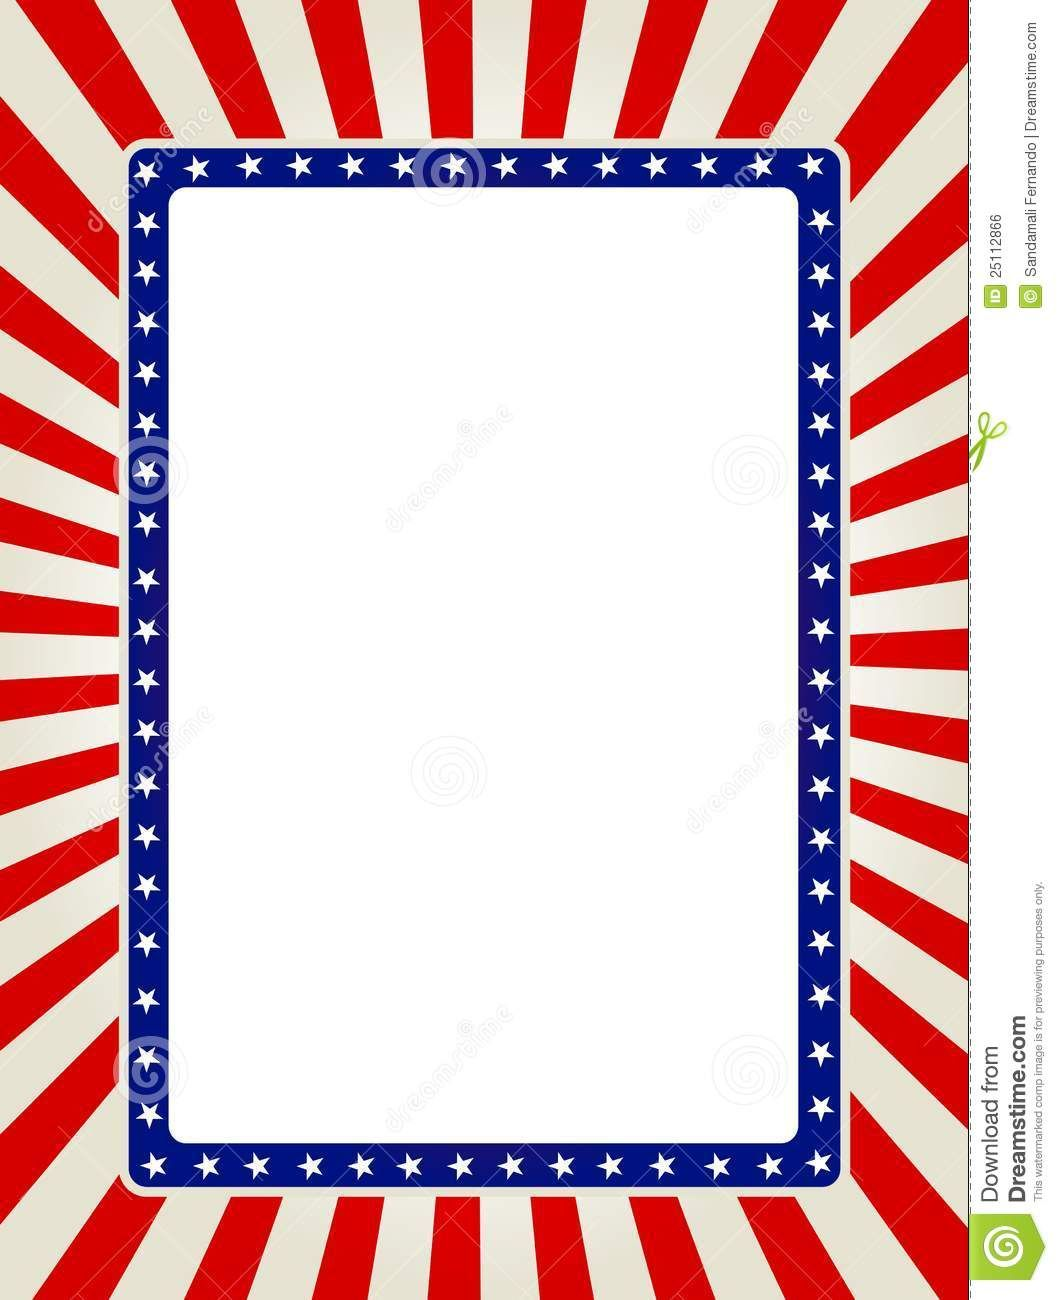 Free vector clipart fourth of july border png free download Free Patriotic Page Borders | Patriotic border | Images | Borders ... png free download